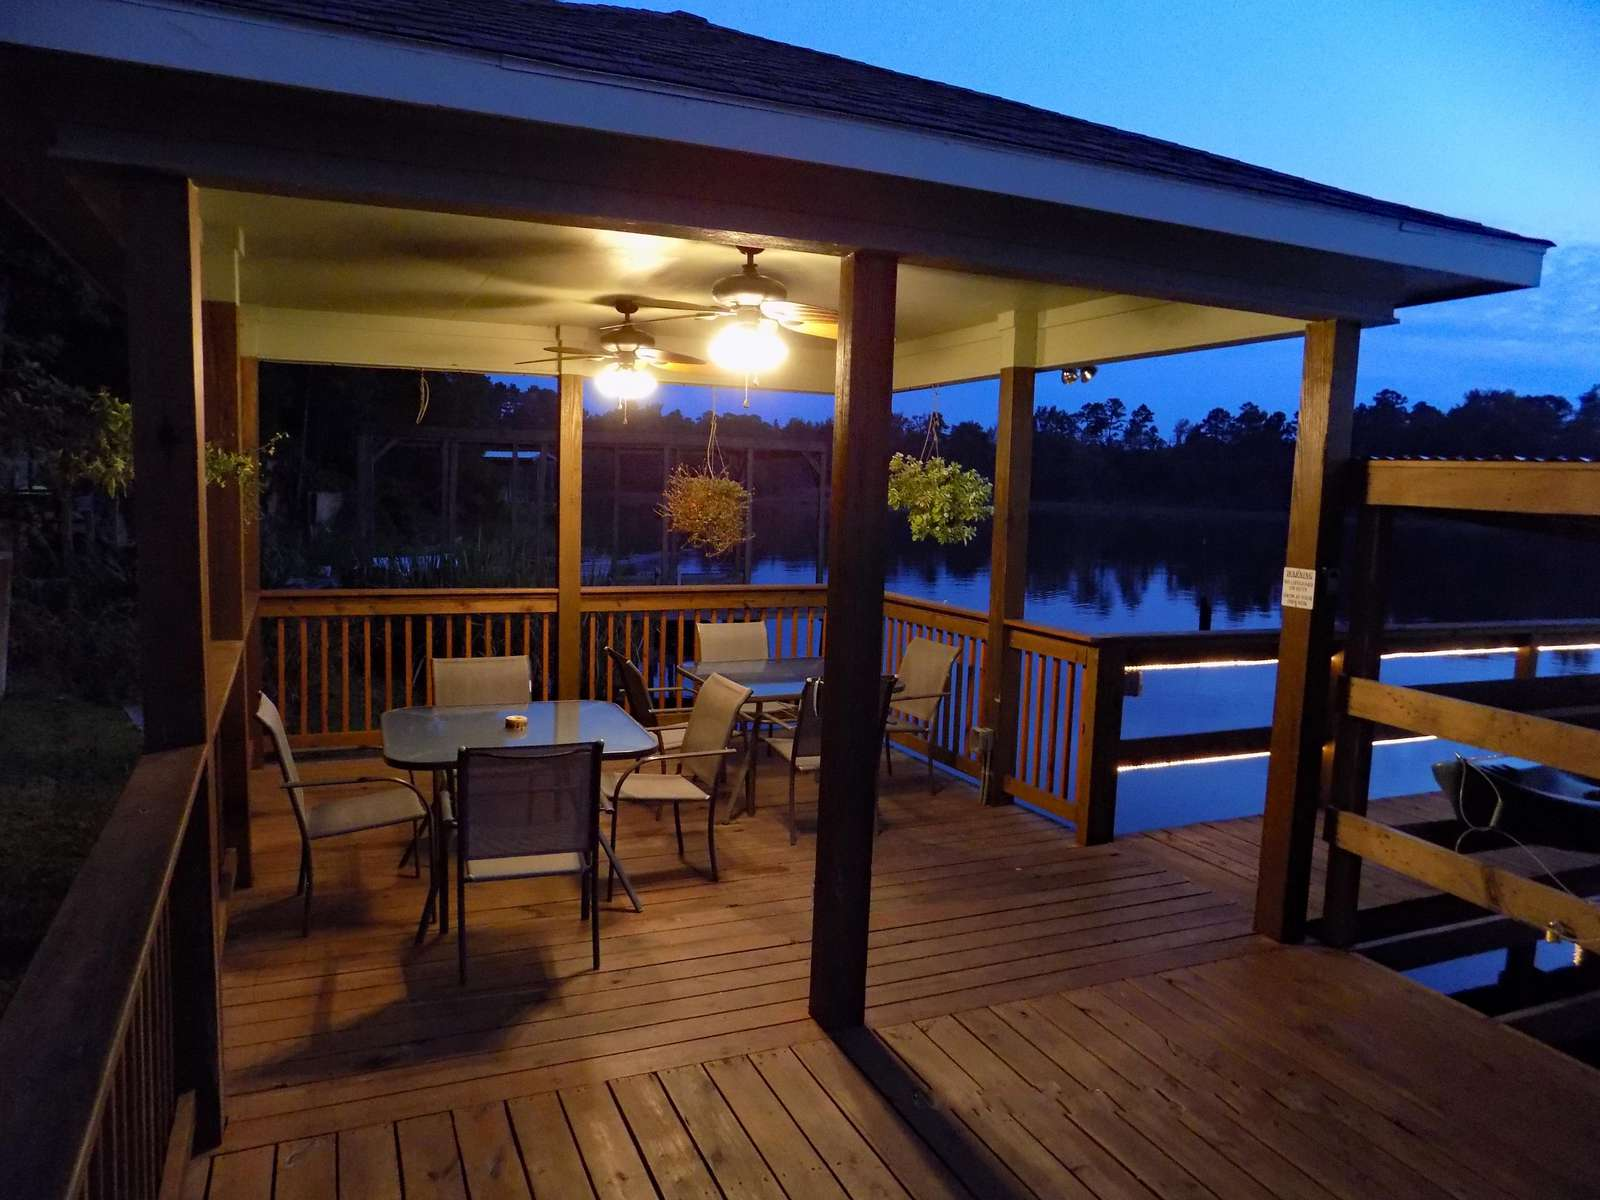 The light show begins as evening approaches. Enjoy the balmy lake breezes in the cabana